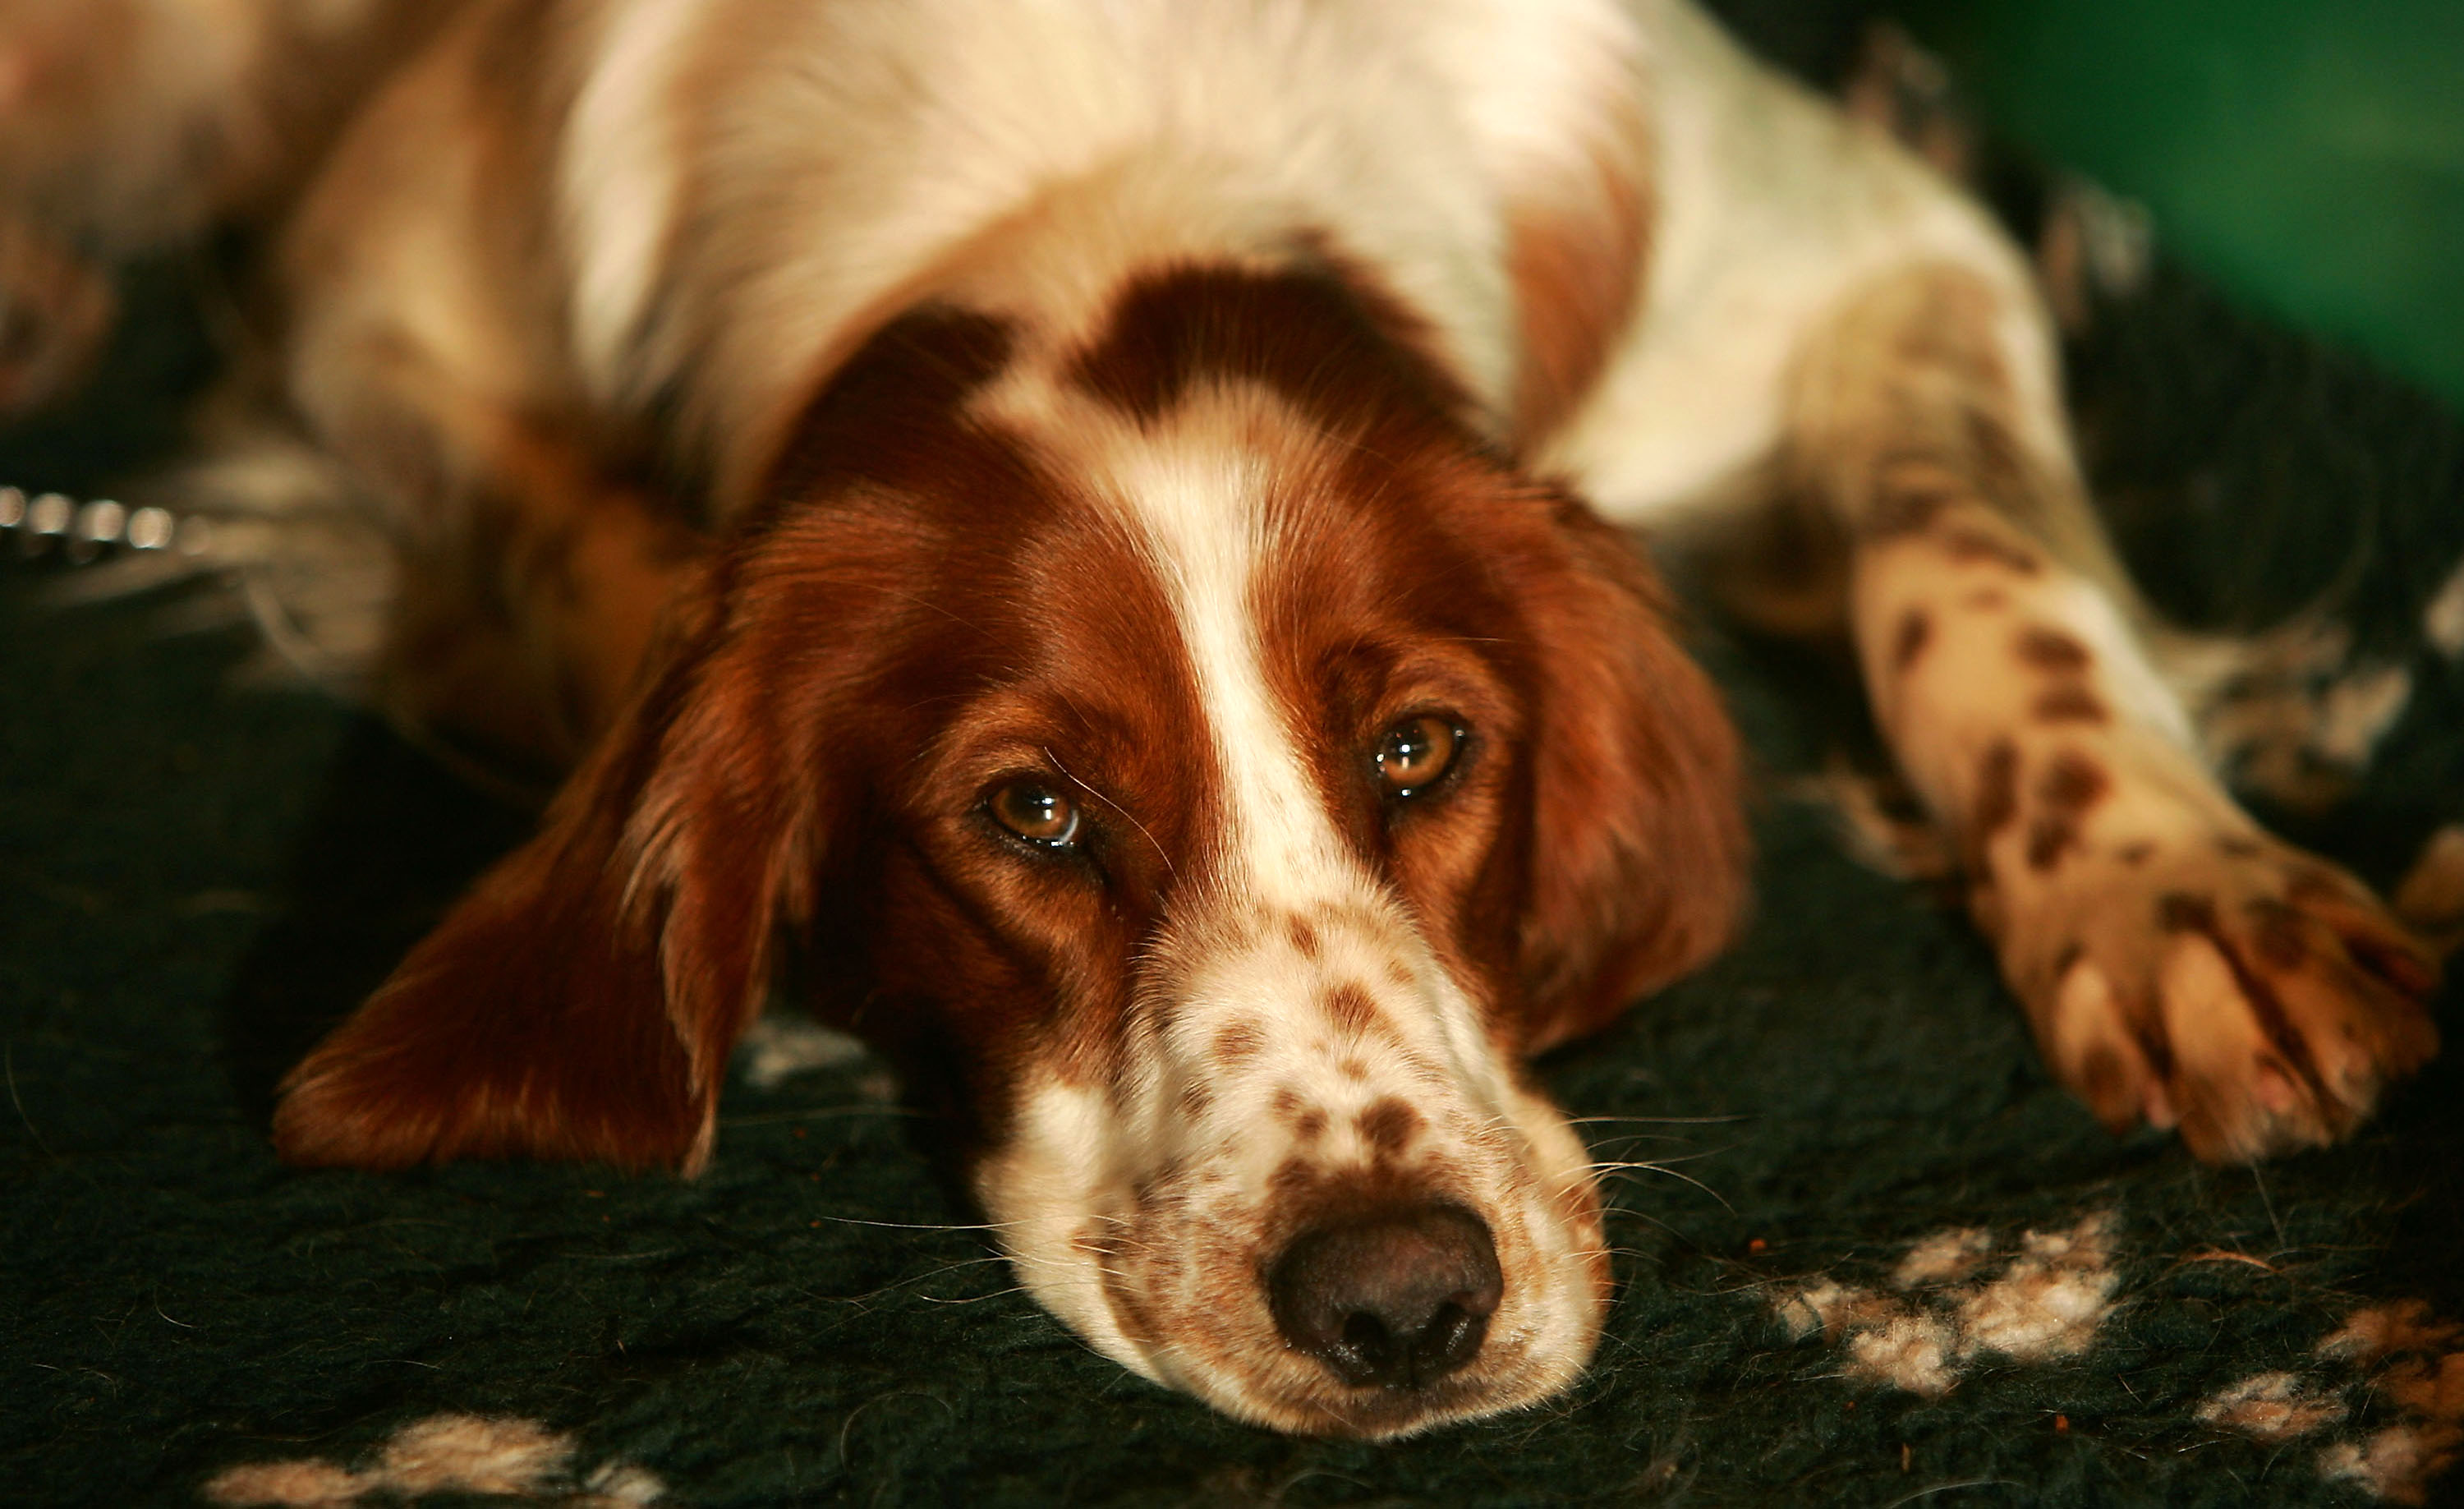 50 dog breeds that didn't exist 50 years ago